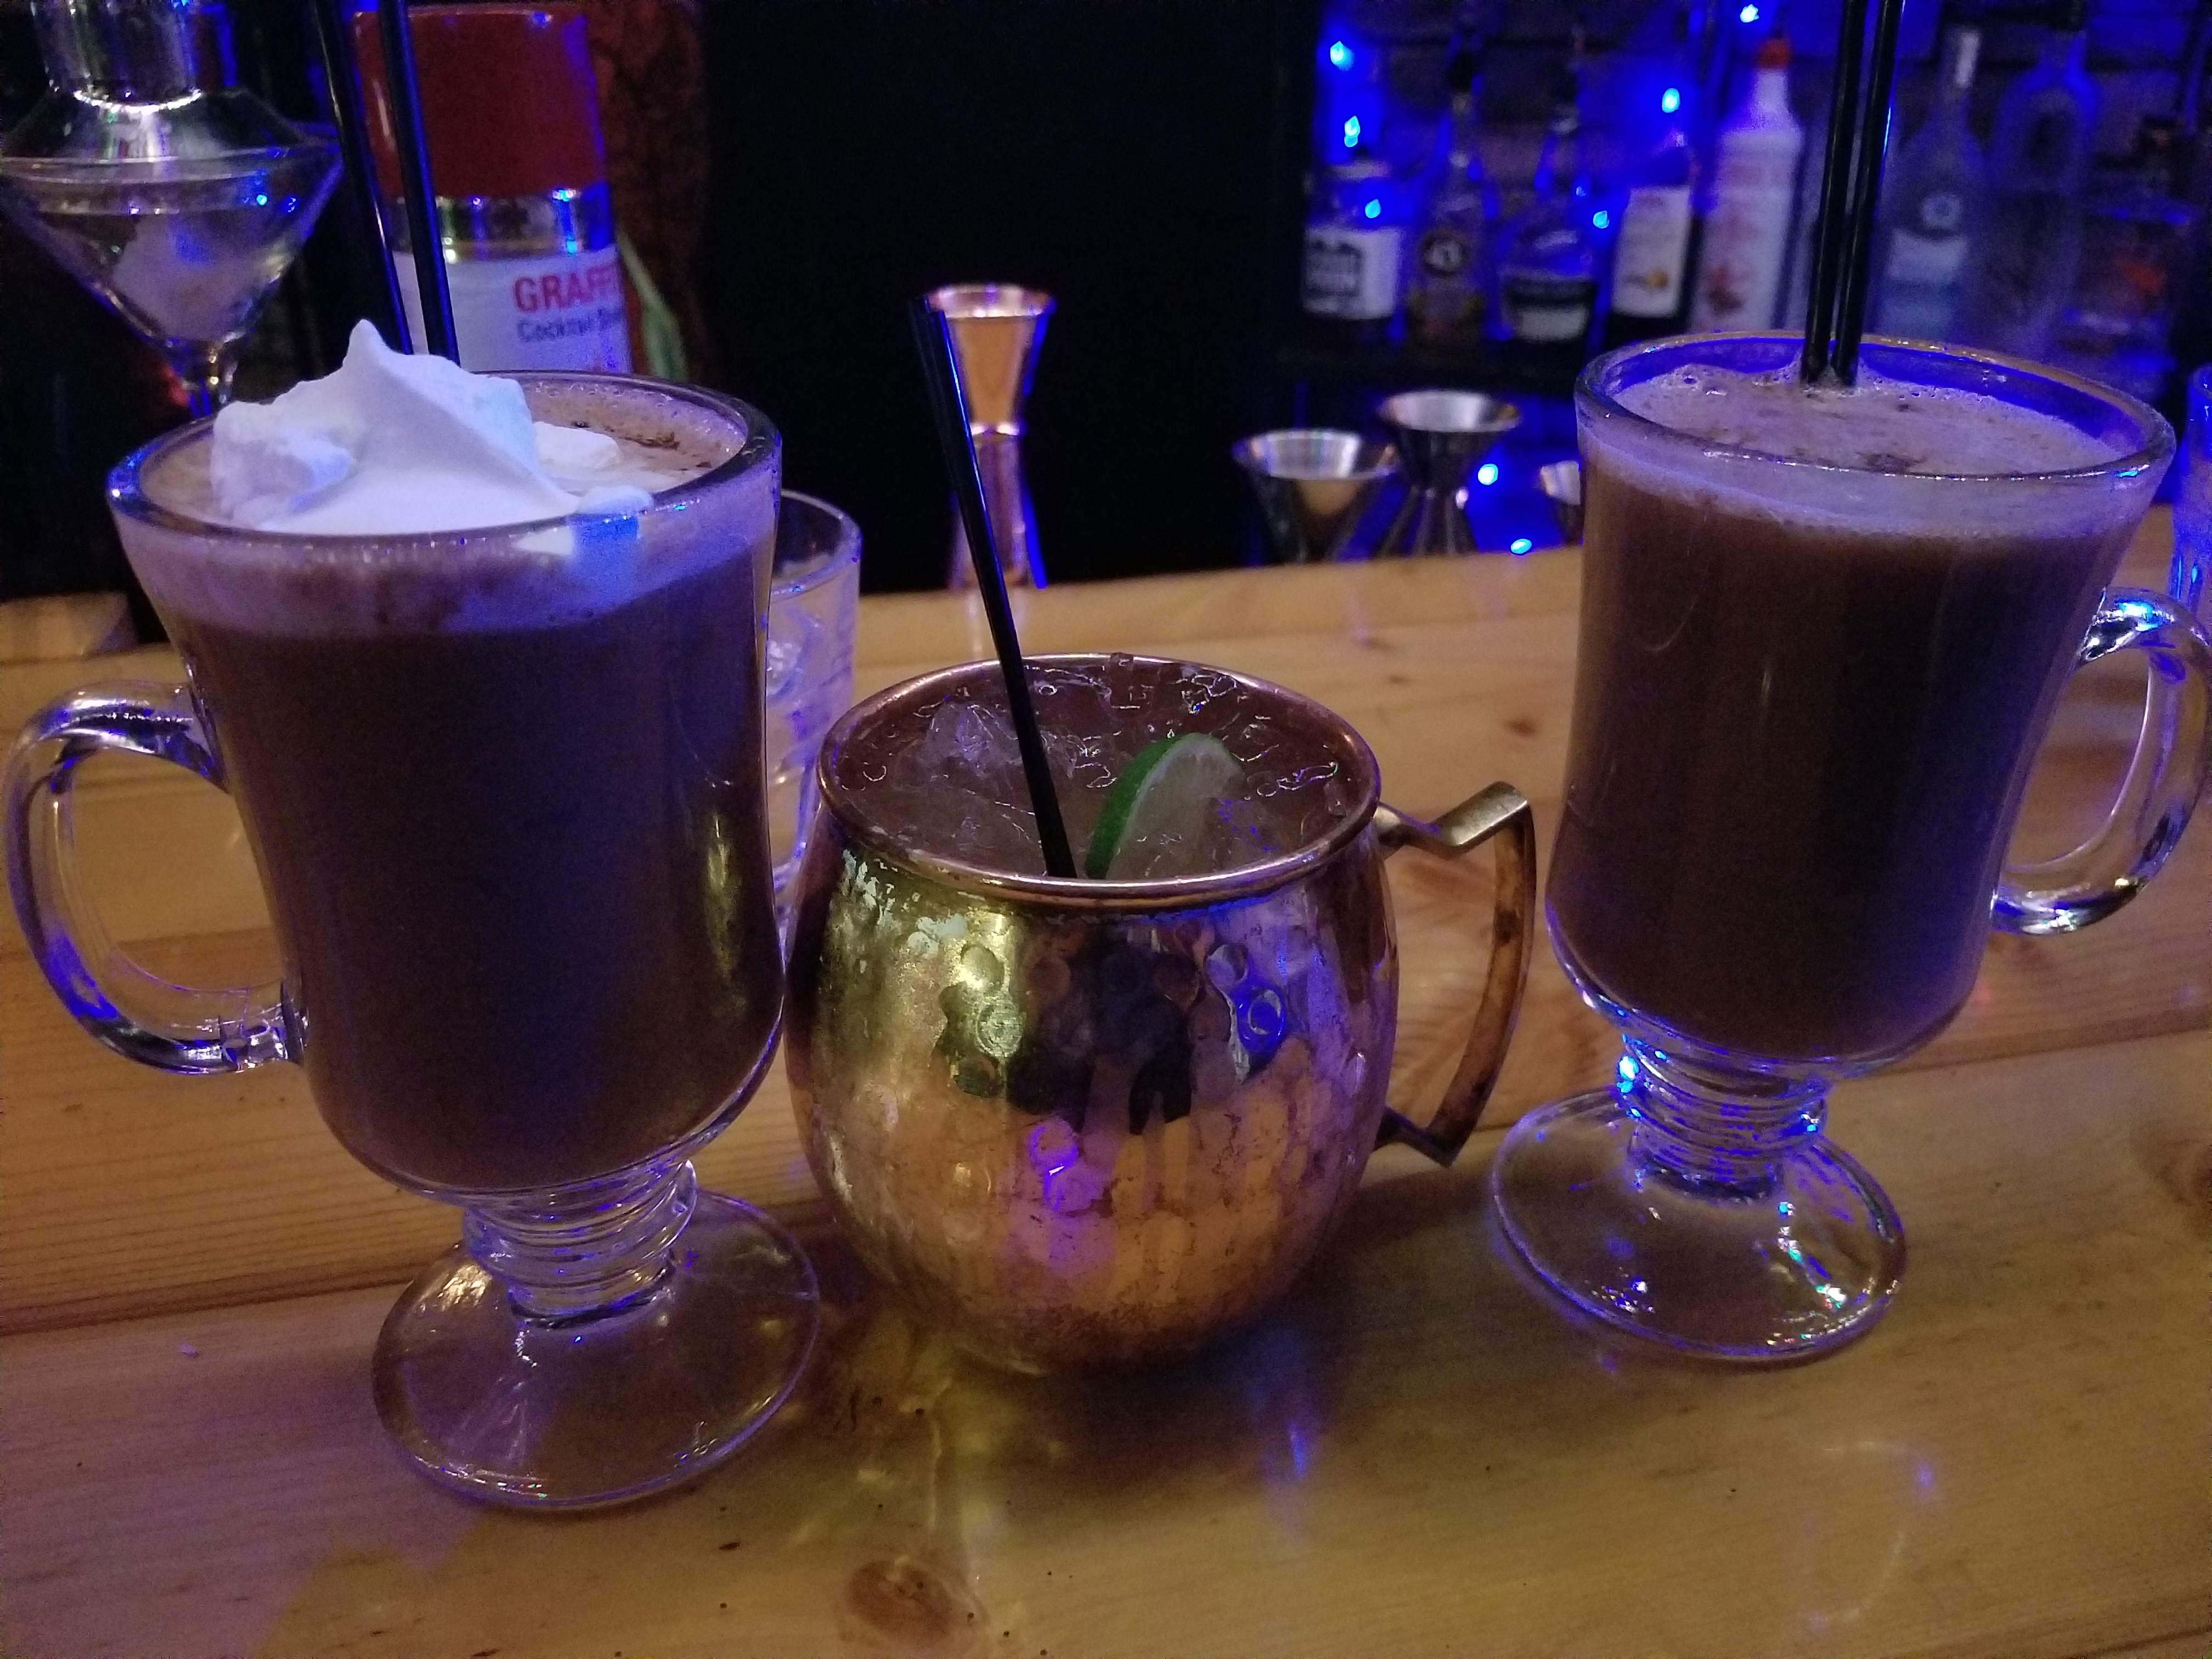 Peppermint Heat, Apple Pie Mule, and Butter Baby!